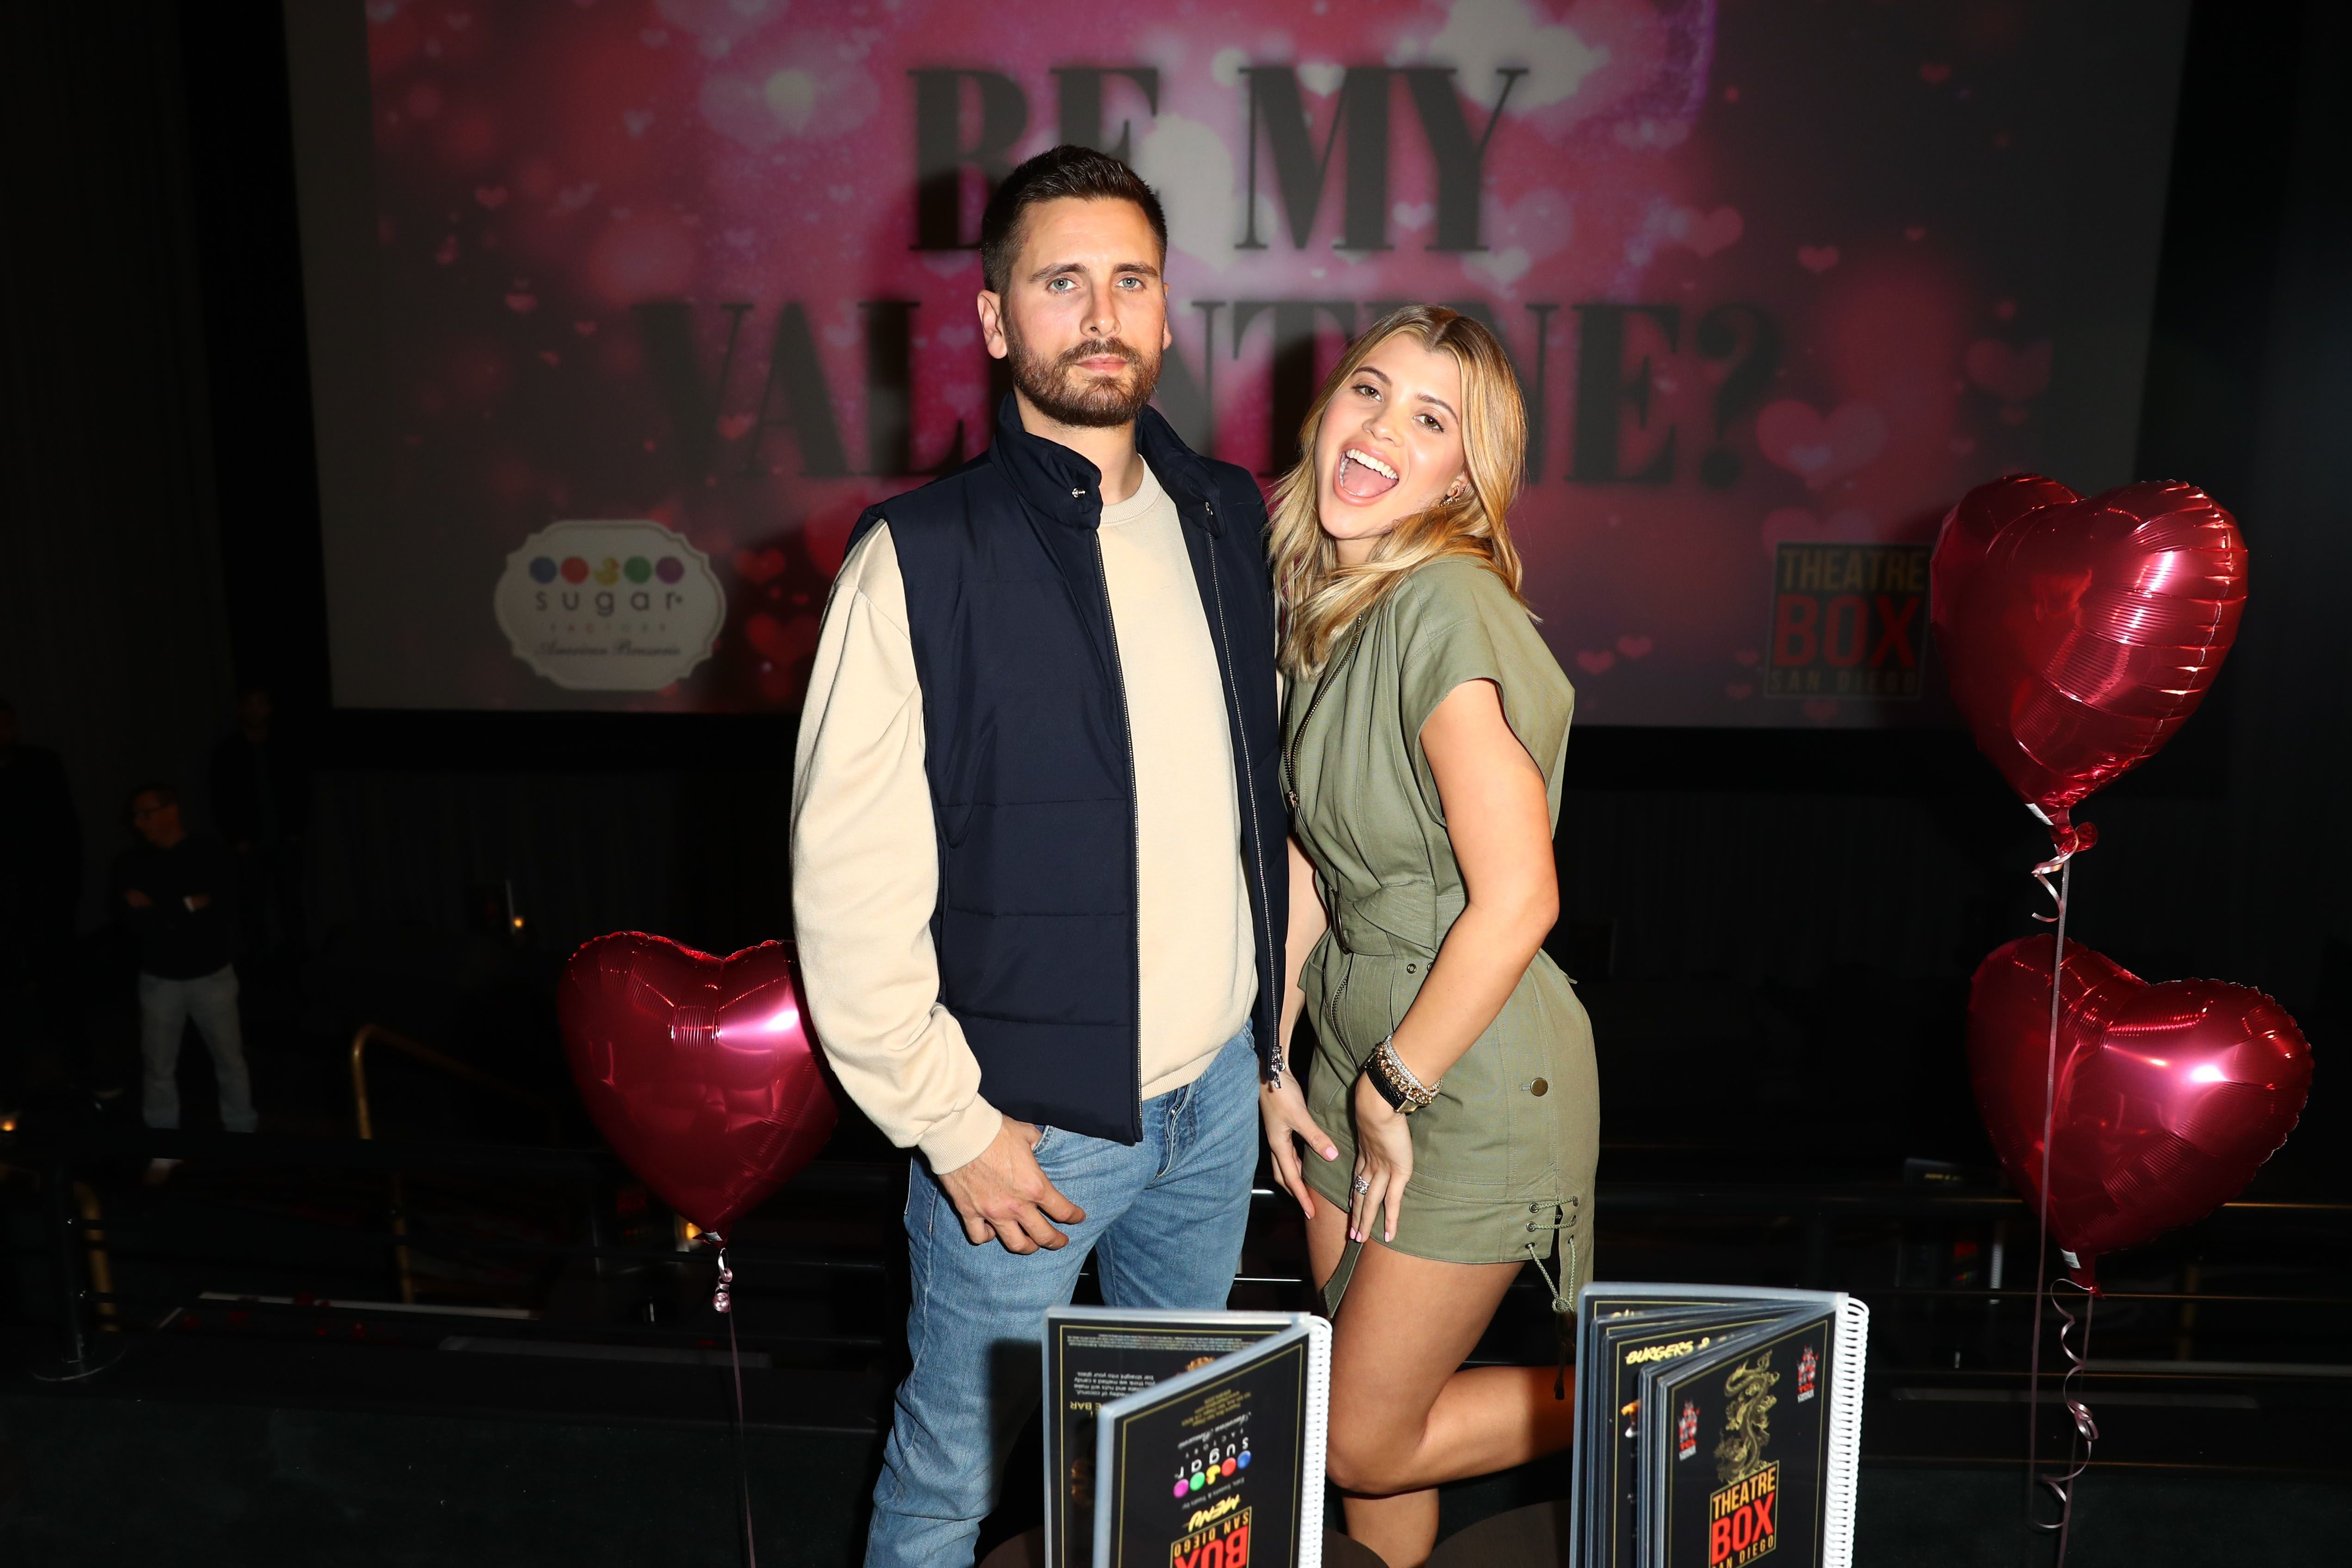 Scott Disick and Sofia Richie celebrate Valentine's Day at the Theatre Box® Entertainment Complex on February 14, 2019, in San Diego, California | Photo:Joe Scarnici/Getty Images